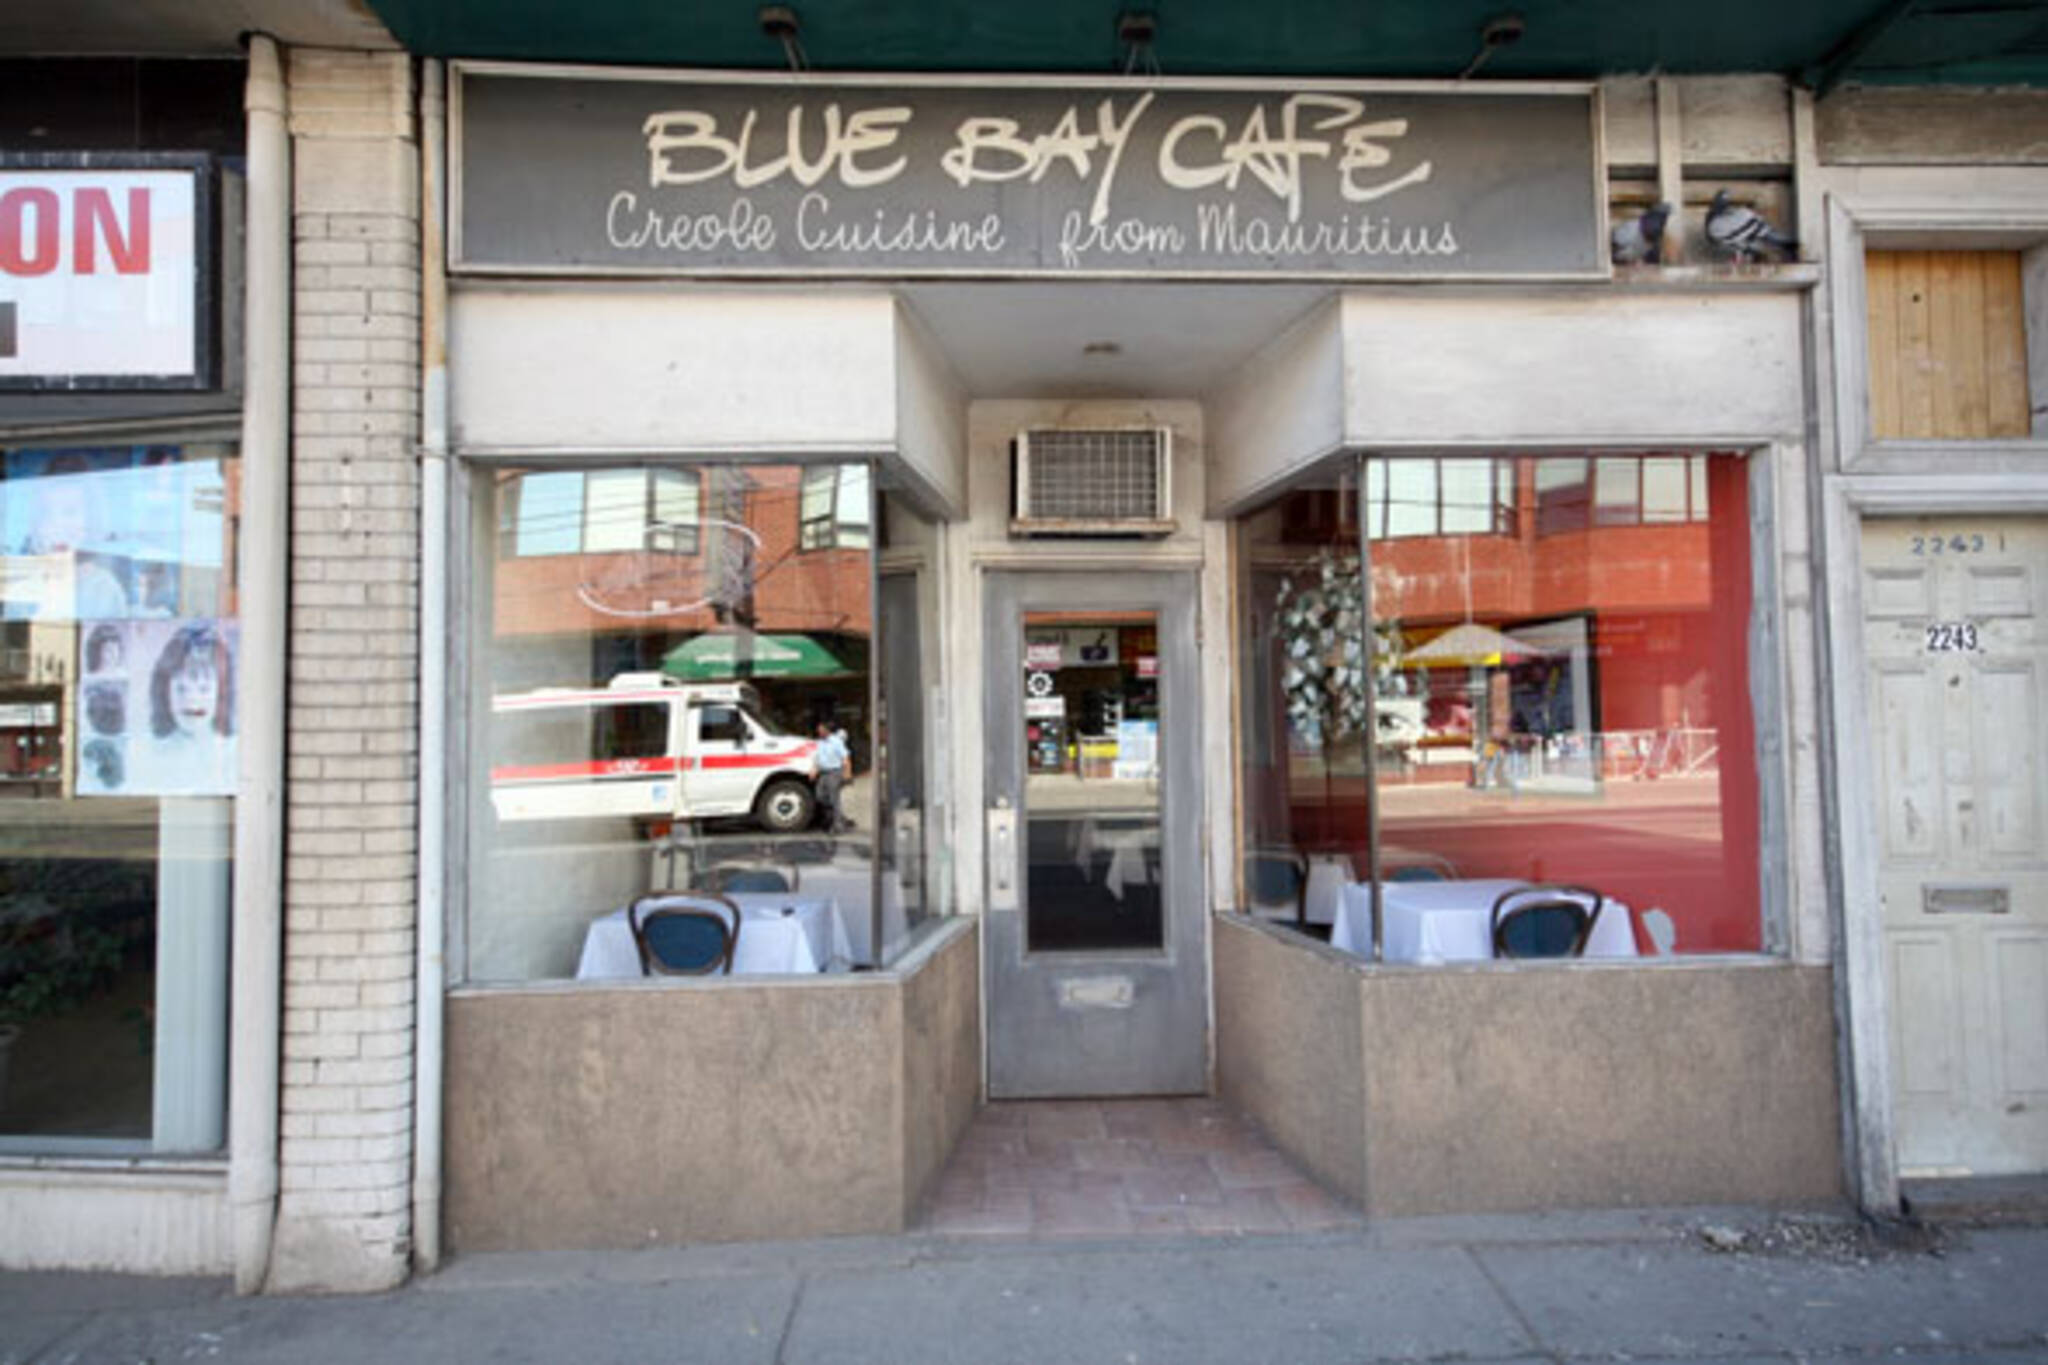 20070529_bluebaycafe.jpg